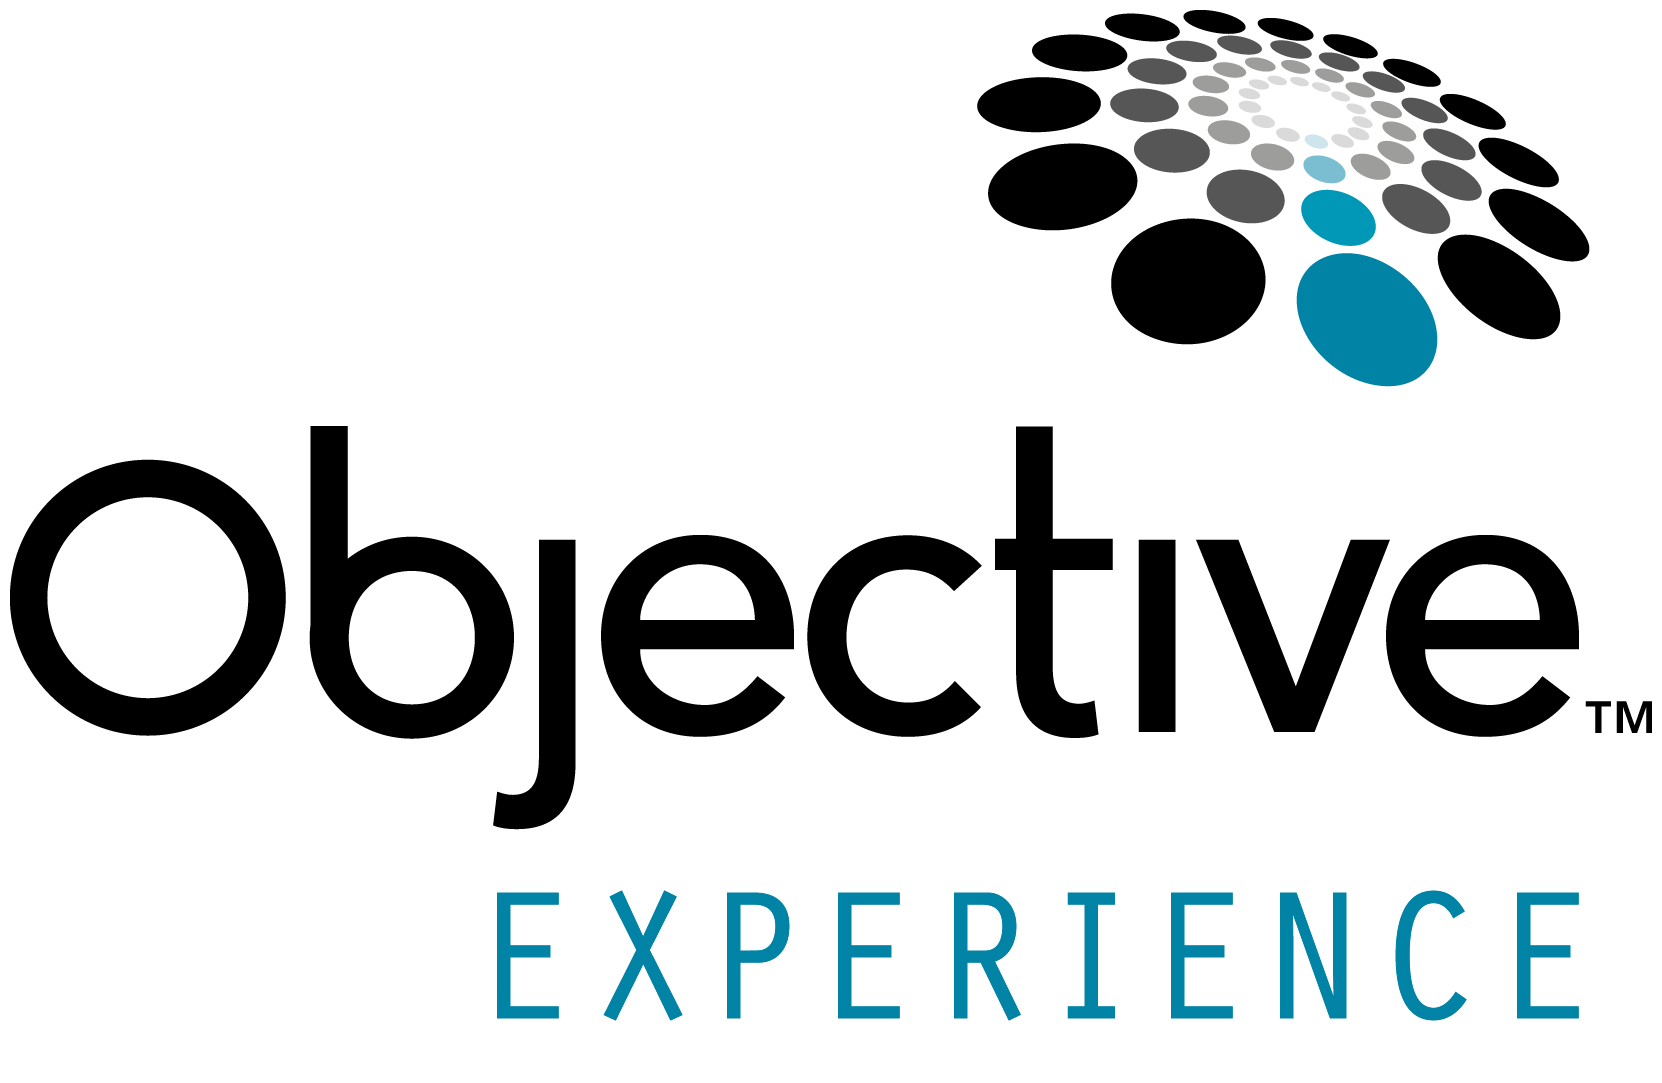 ObjectiveExperience_logo_Turquoise_RGB-116.png